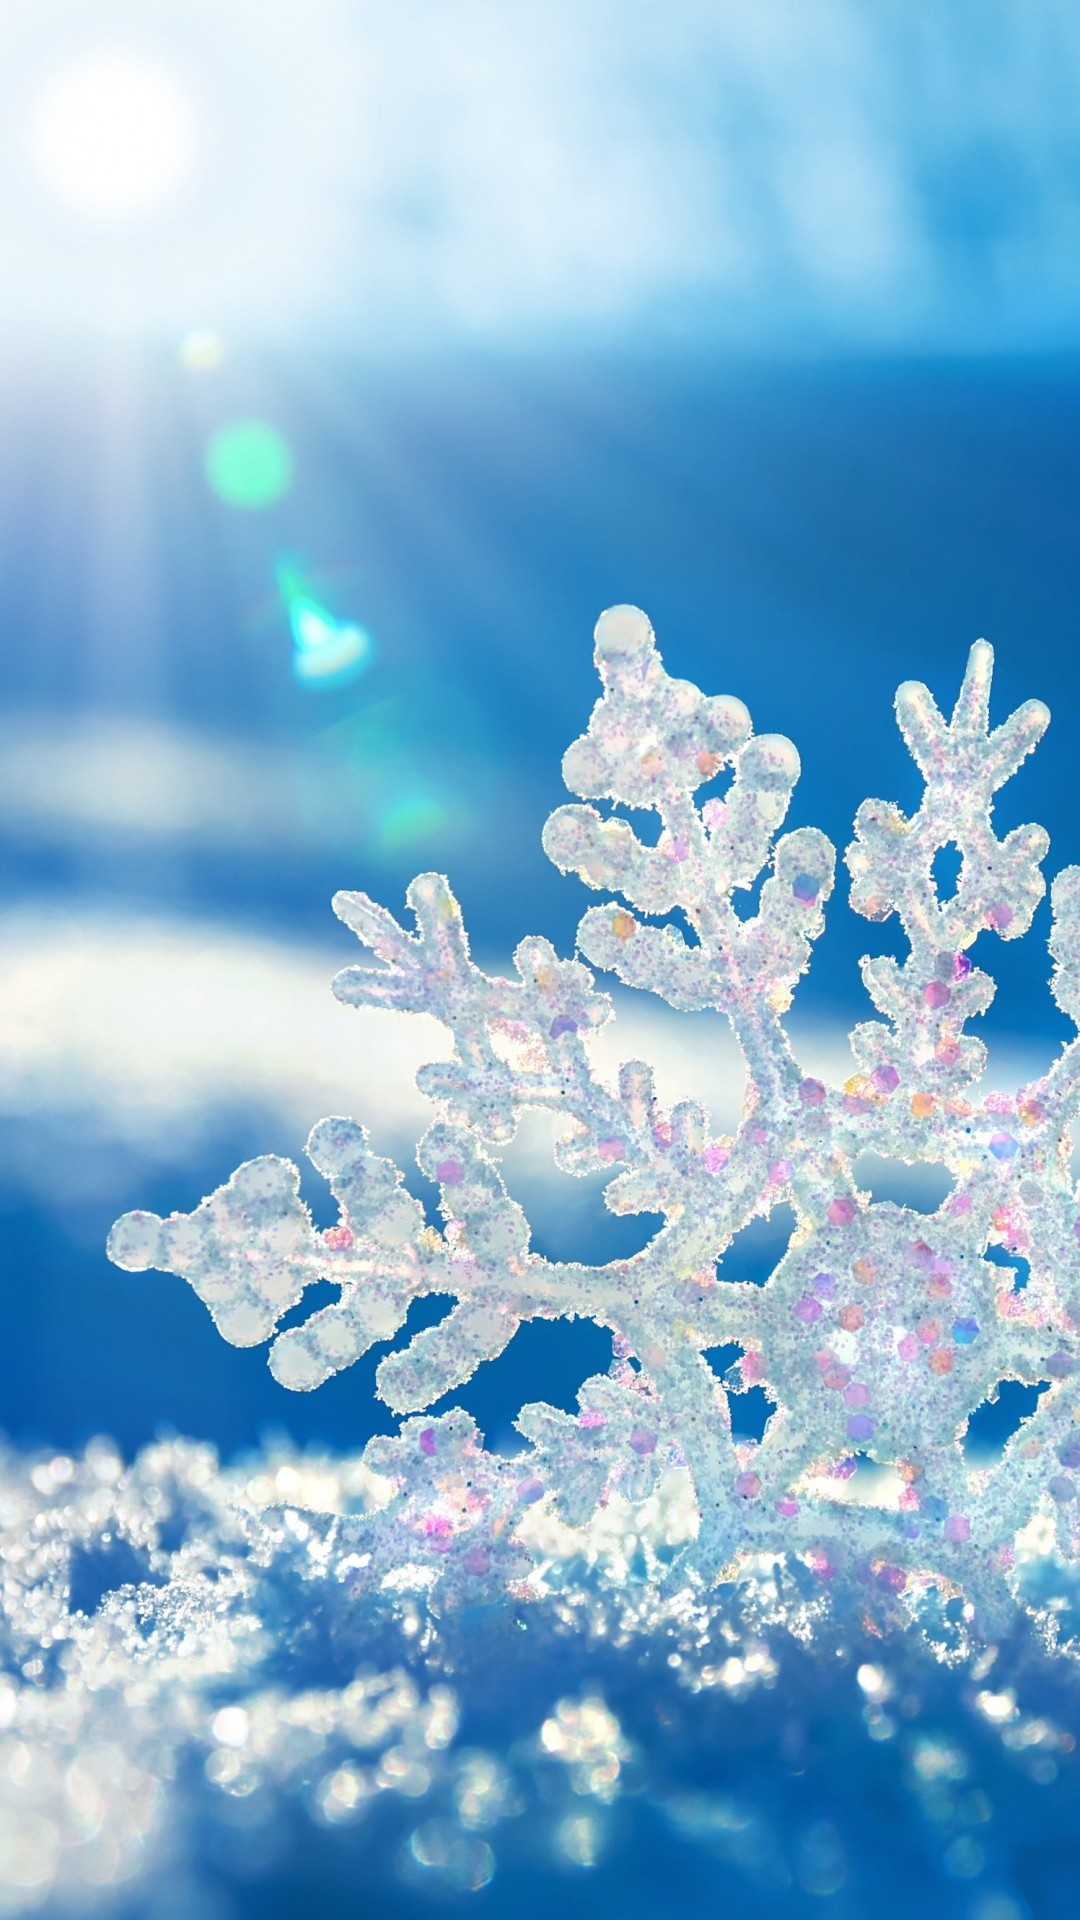 Snowflake Wallpaper for SAMSUNG Galaxy S4